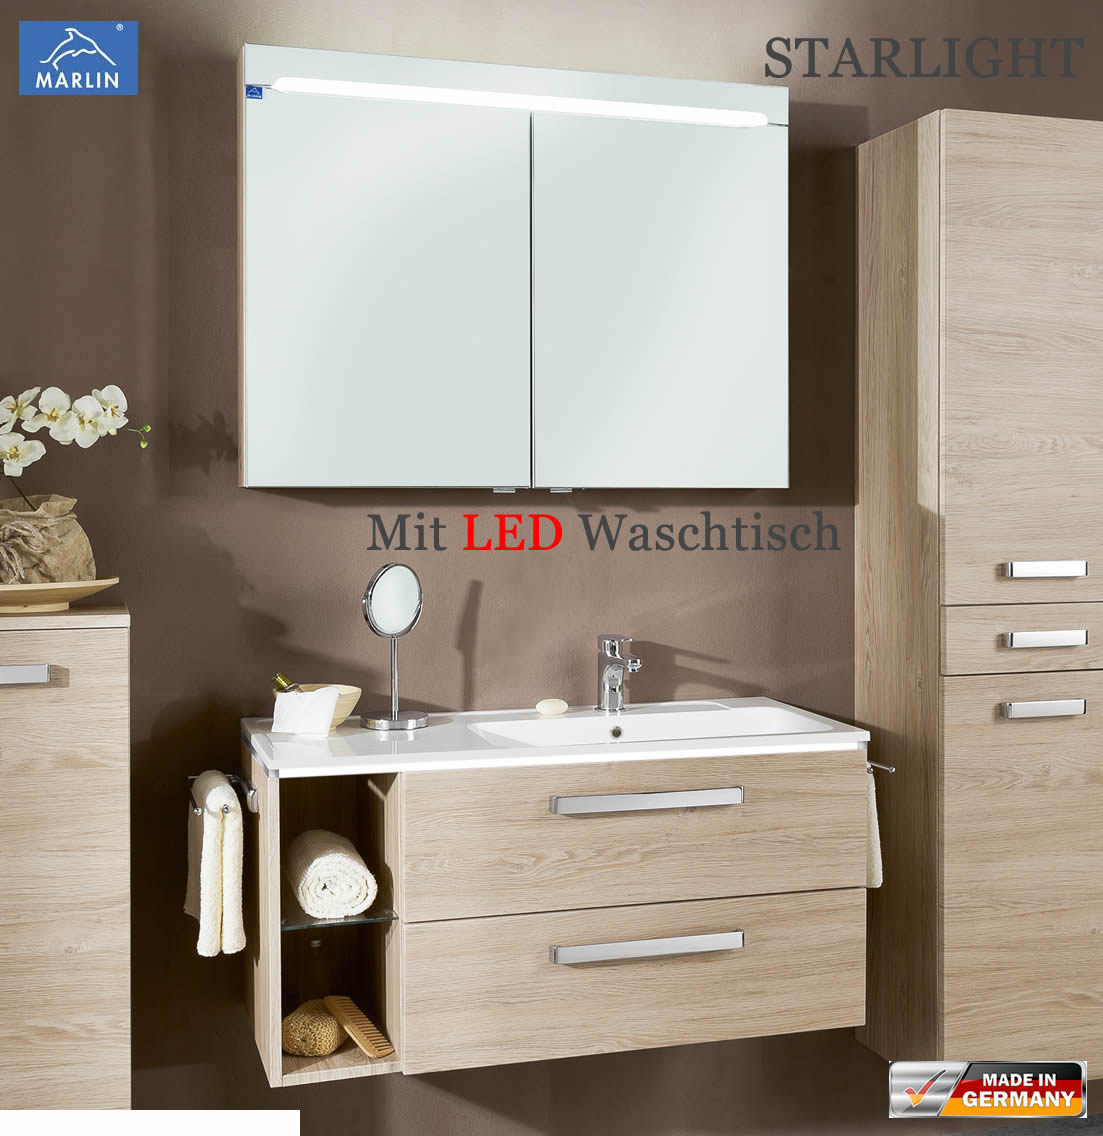 marlin starlight badm bel set 100 cm mit led waschtisch aus mineralmarmor v3 2 impuls home. Black Bedroom Furniture Sets. Home Design Ideas